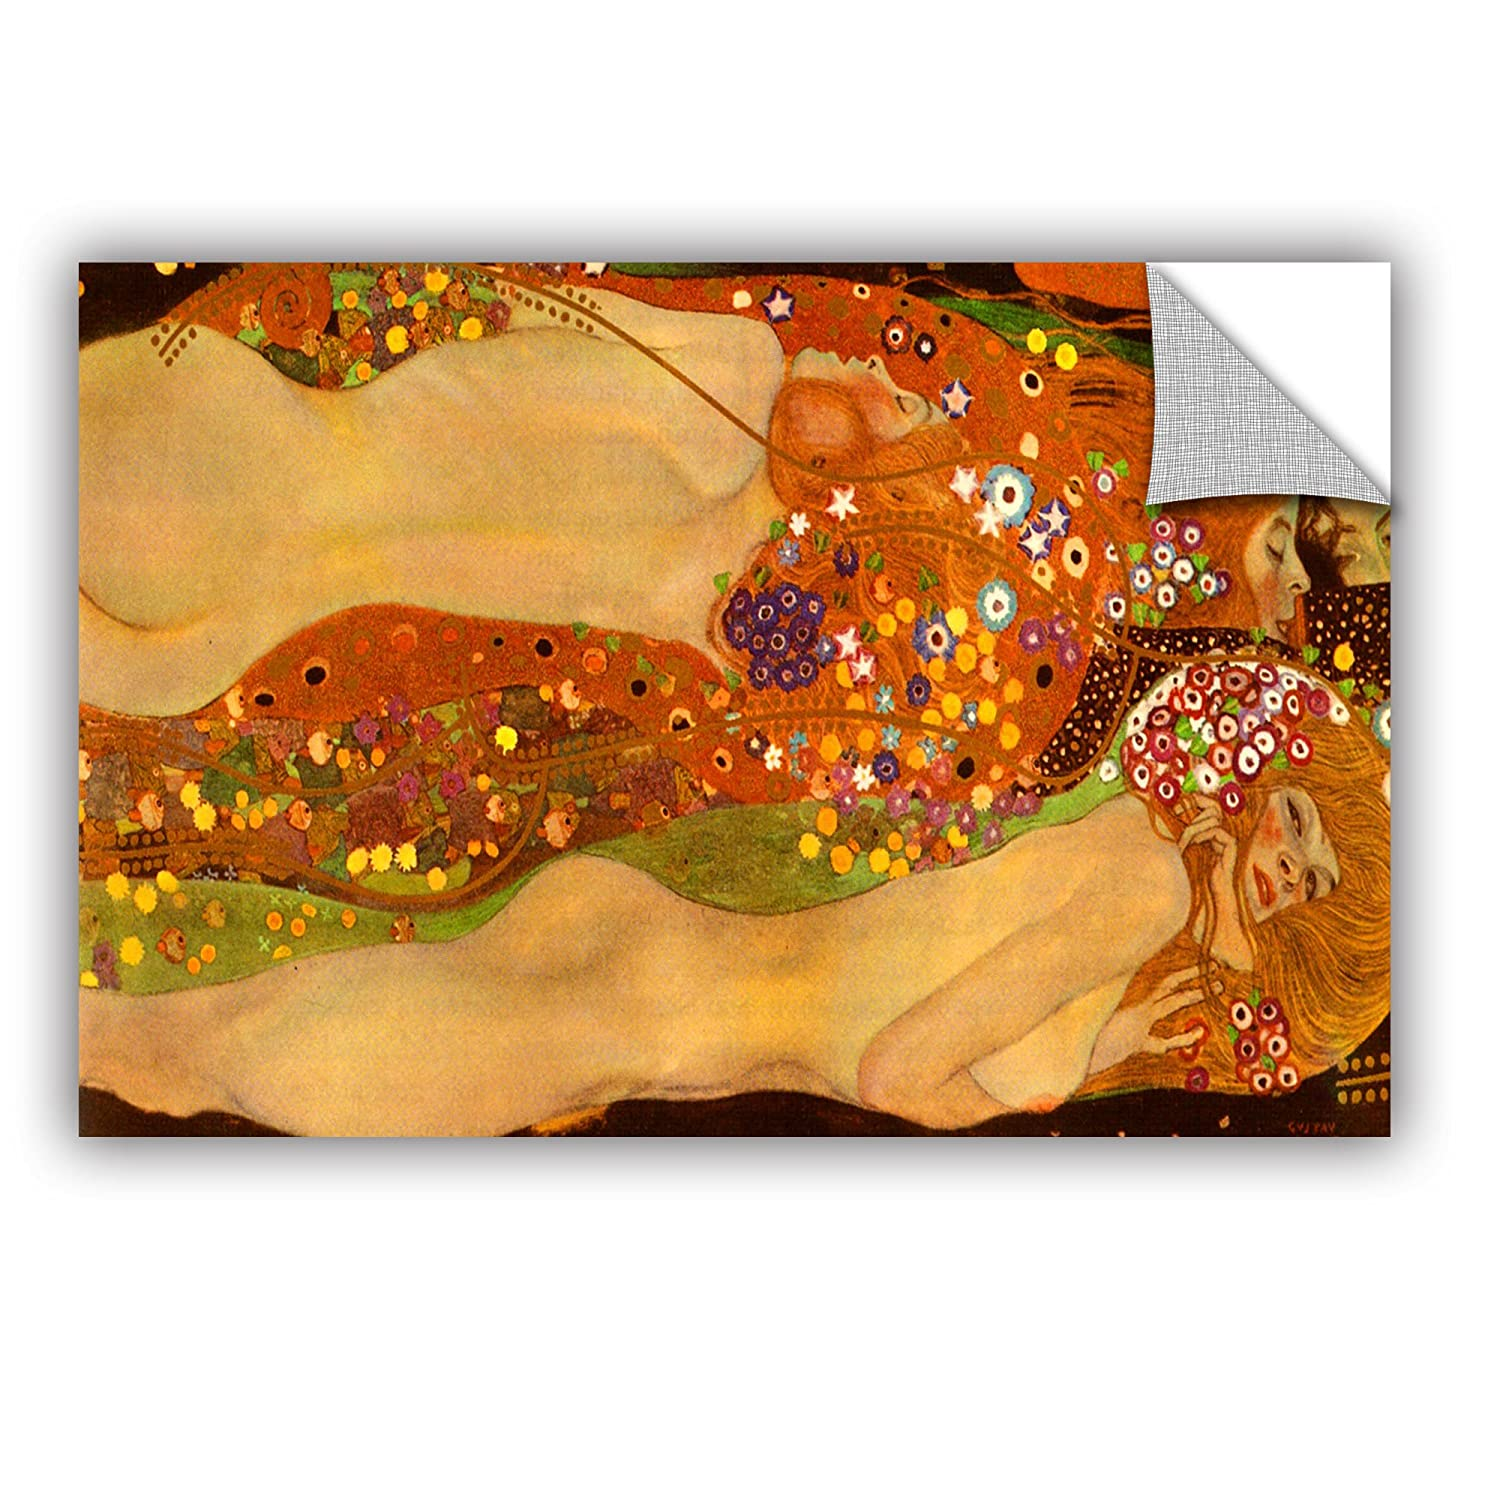 16 by 24 ArtWall Gustav Klimts Water Snakes Appeelz Removable Graphic Wall Art